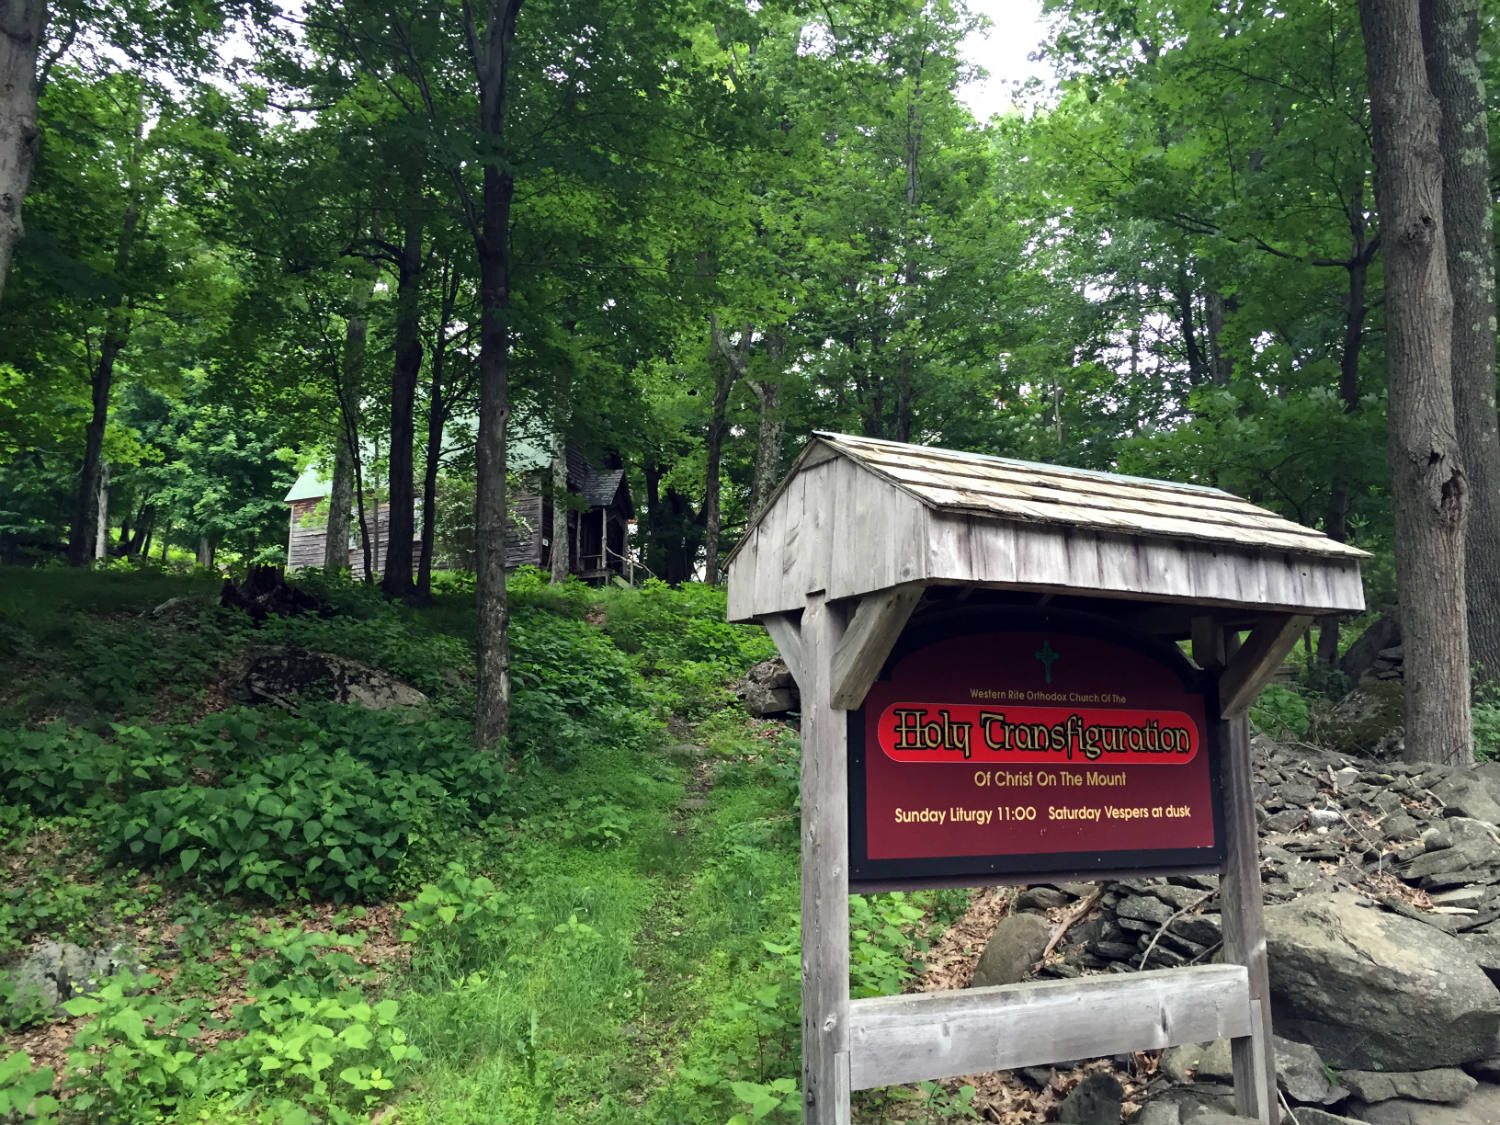 Trail to Holy Transfiguration of Christ On the Mount in Woodstock, New York